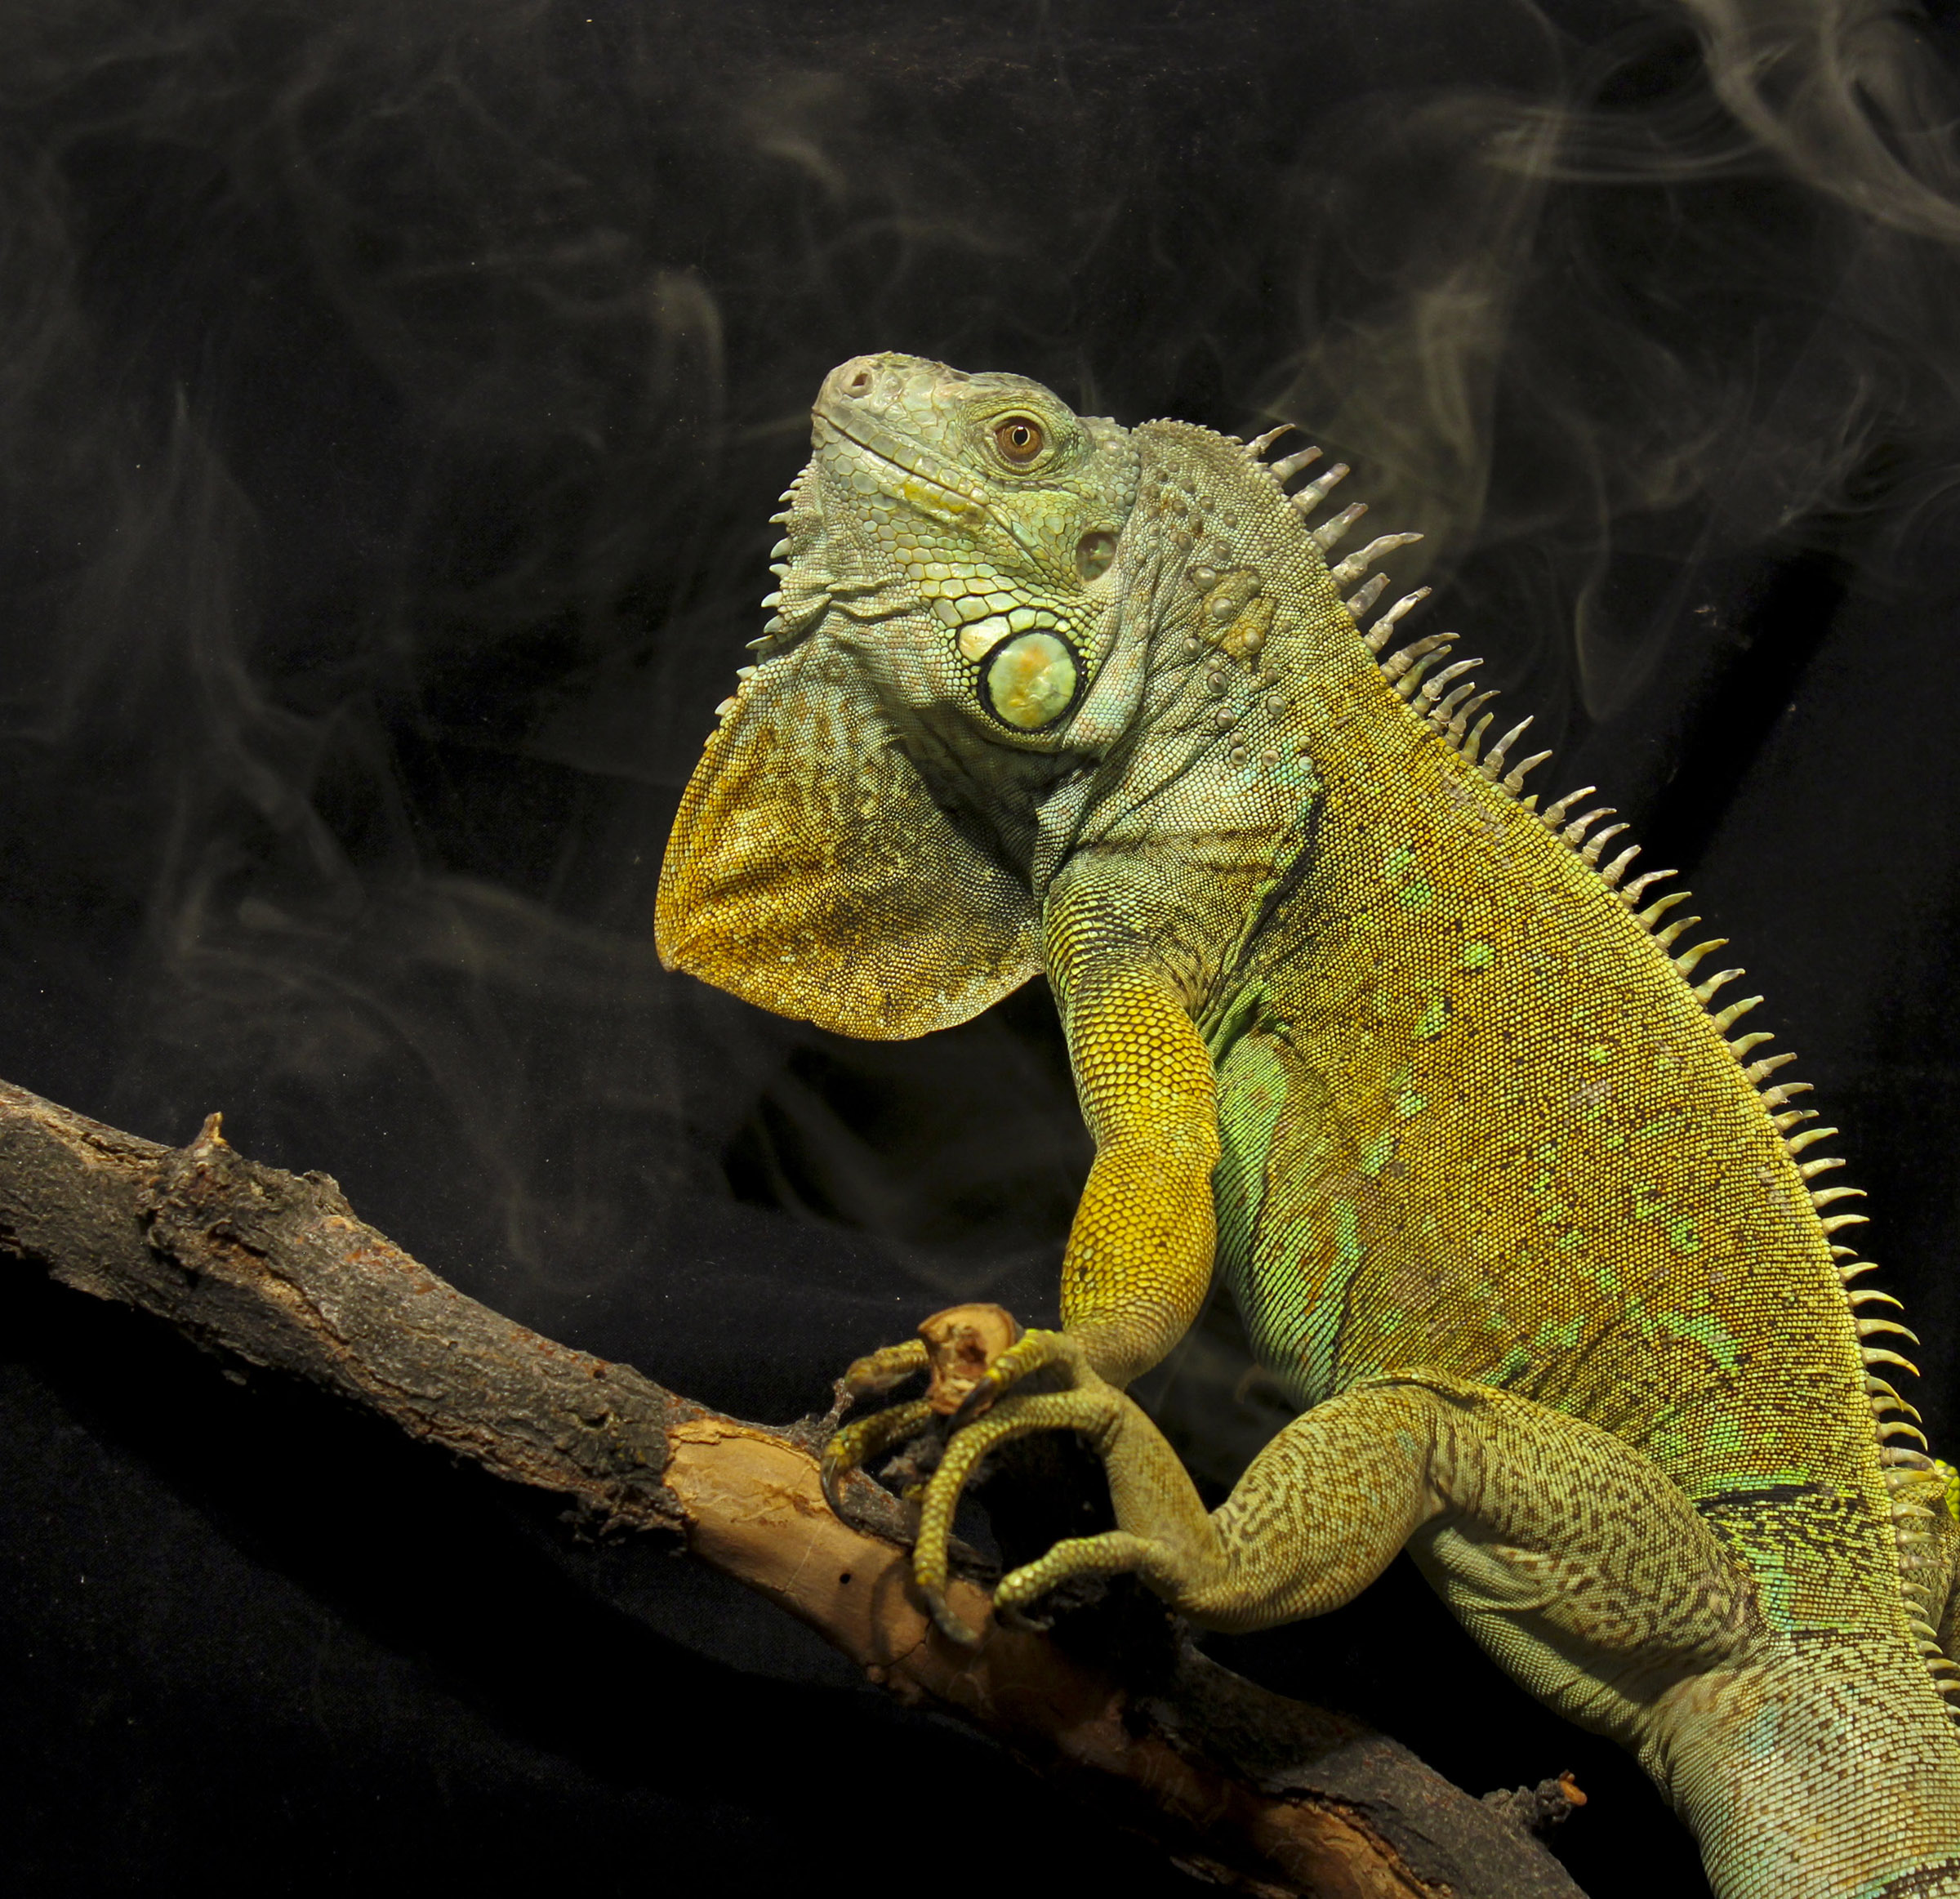 University of Utah scientists have shown that green iguanas have bird-like breathing; air flows in a one-directional loop through their lungs. The discovery bolsters the case that this style of breathing evolved in a common ancestor of lizards, snakes, crocodiles and dinosaurs including birds.